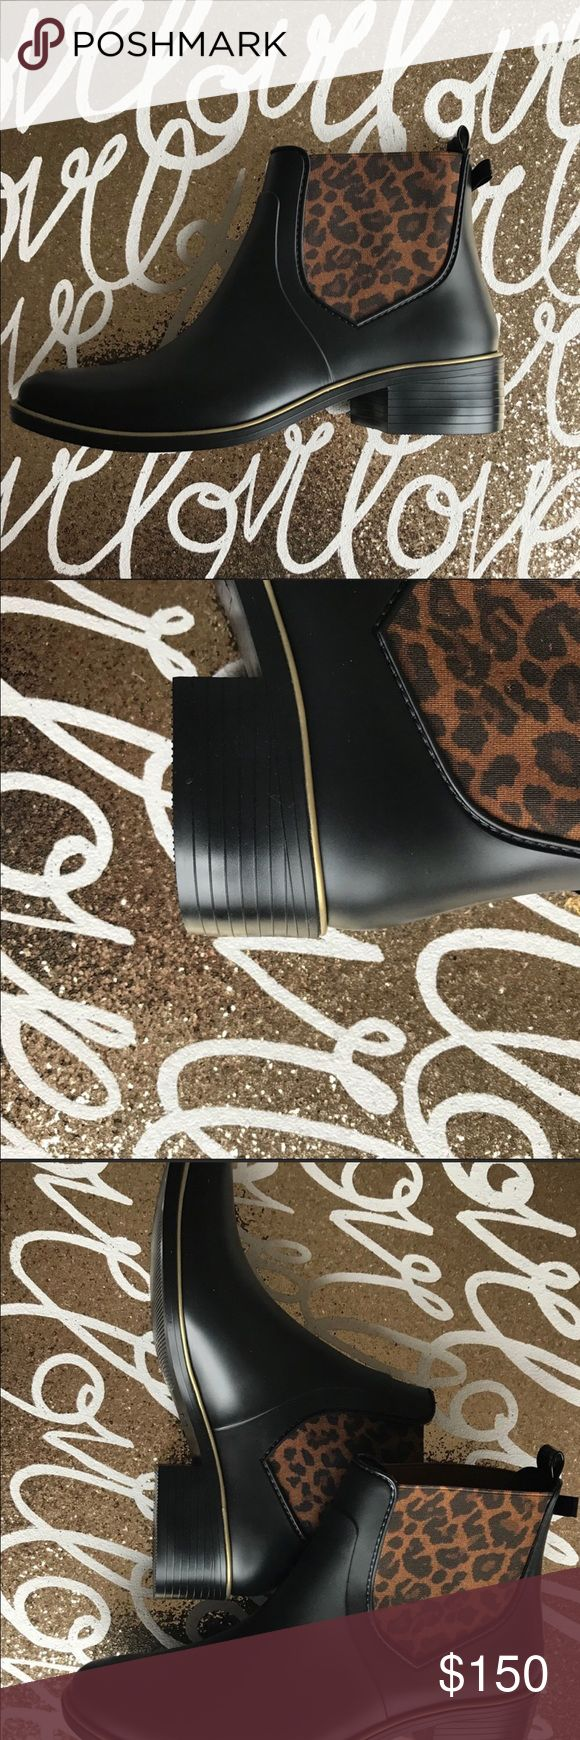 """Kate Spade Sedgewick Leopard Print Rain Boots Brand new...never worn! Cute pull bow tab on back...they're super easy to put on! The inside is cushy...perfect for all day comfort! Rubber sole with 1 3/4"""" heel. IMO these can fit size 9 1/2-11. Offers welcome 😊 kate spade Shoes Winter & Rain Boots"""